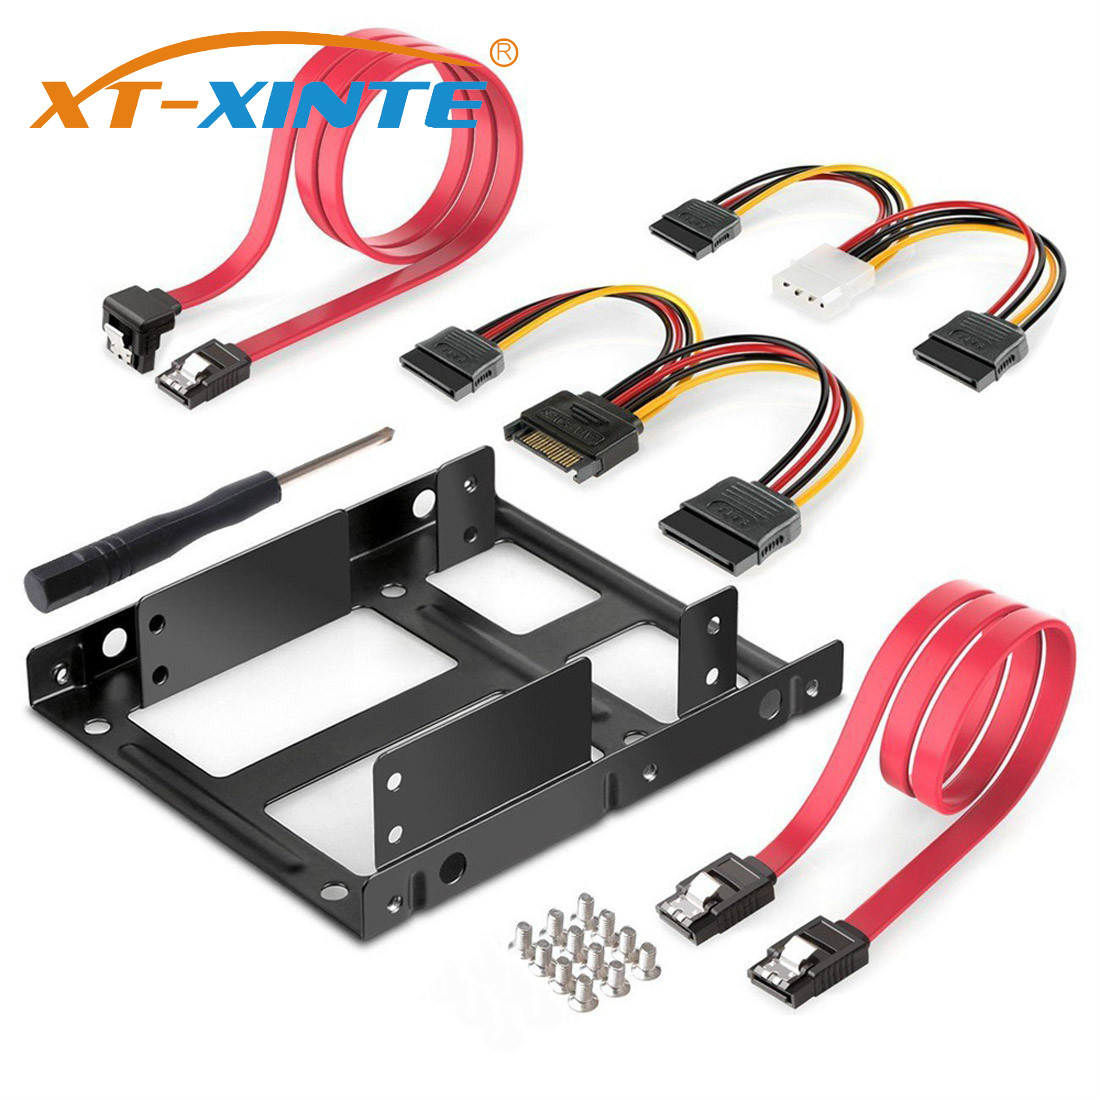 XT-XITEN 2-Bay 2.5 Inch To 3.5 Inch External HDD SSD Metal Mounting Kit Adapter Bracket With SATA Data Power Cables & Screws